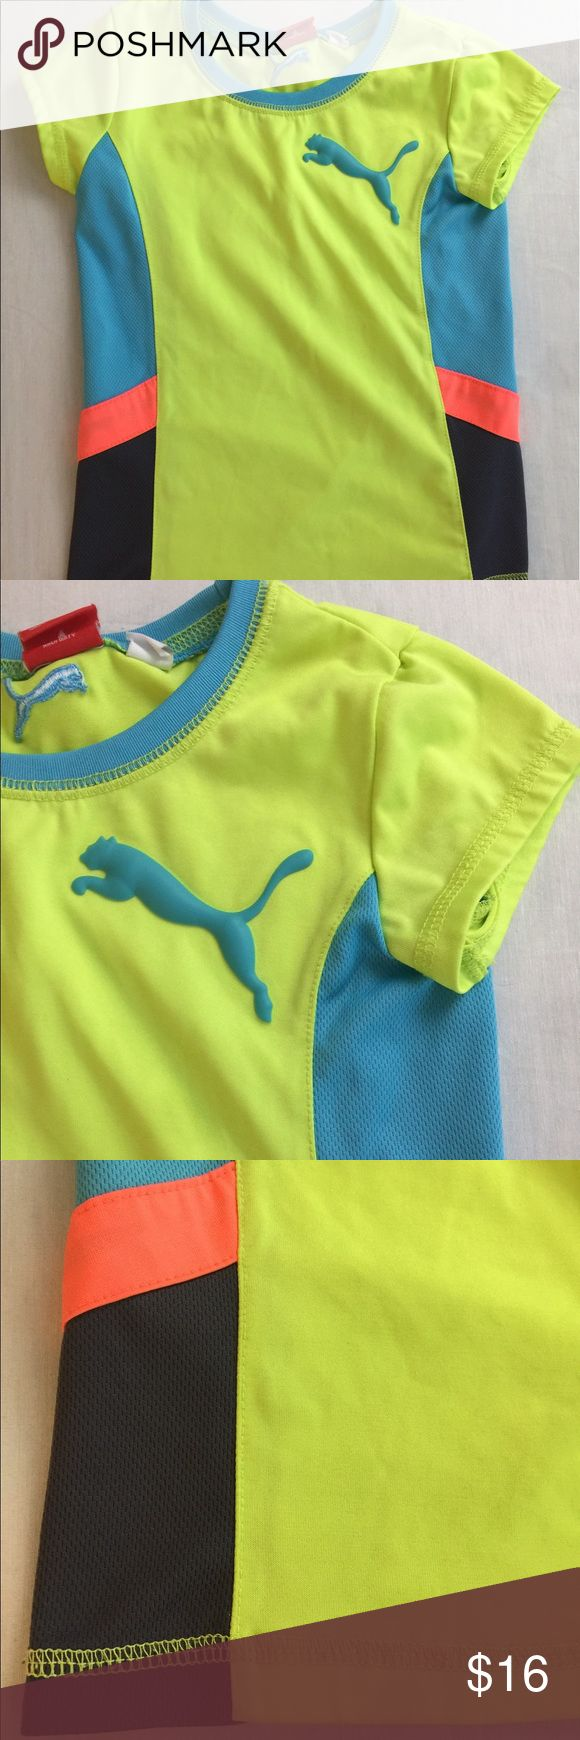 Puma Girls Athletic Top Sz 6 Sport Lifestyle Puma girls athletic top Sport Lifestyle Stretchy bright fun t Shirt  Large 3D puma on the front  No rips or stains Puma Shirts & Tops Tees - Short Sleeve